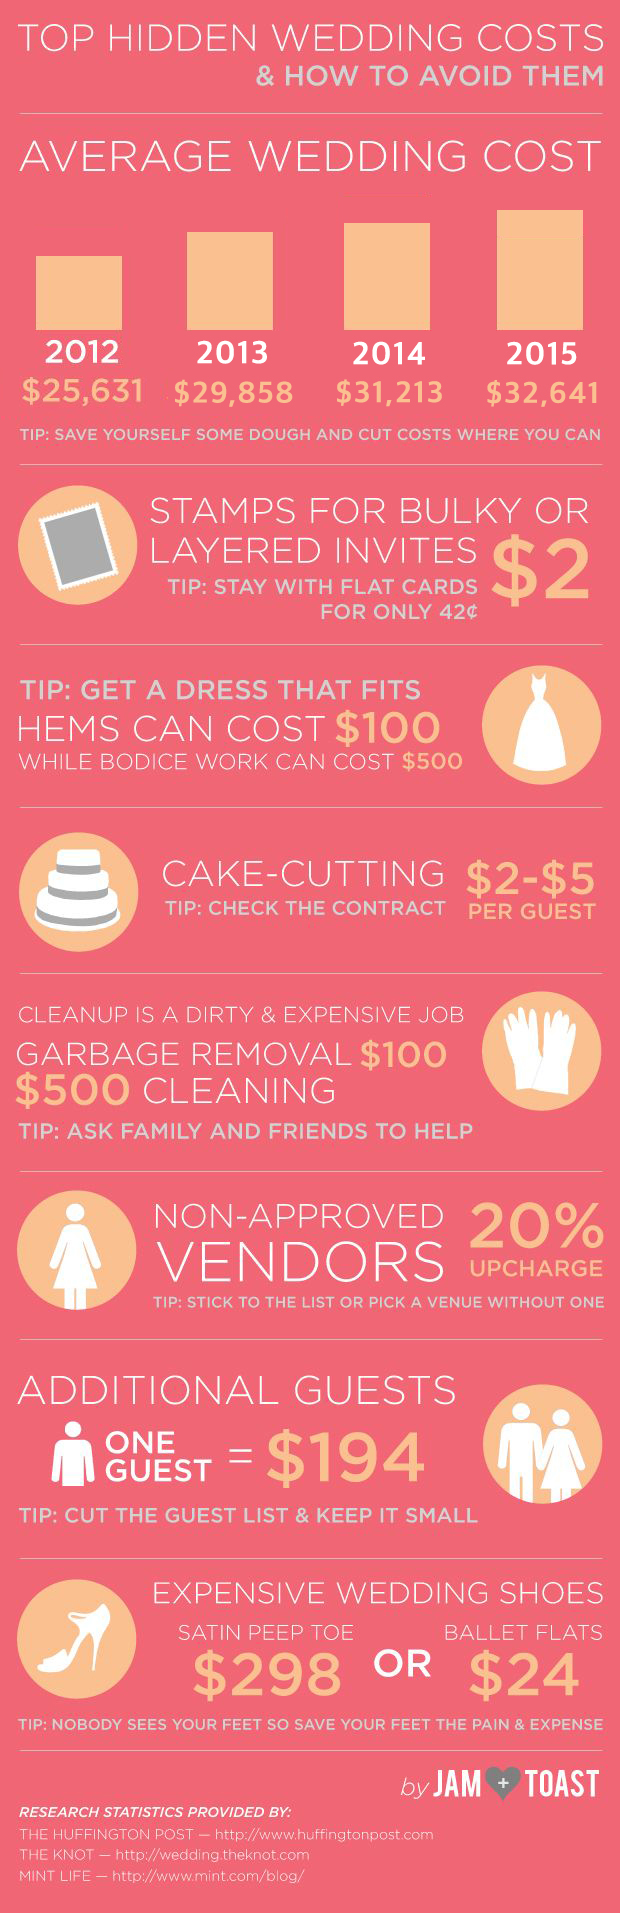 Infographic: Top hidden wedding costs